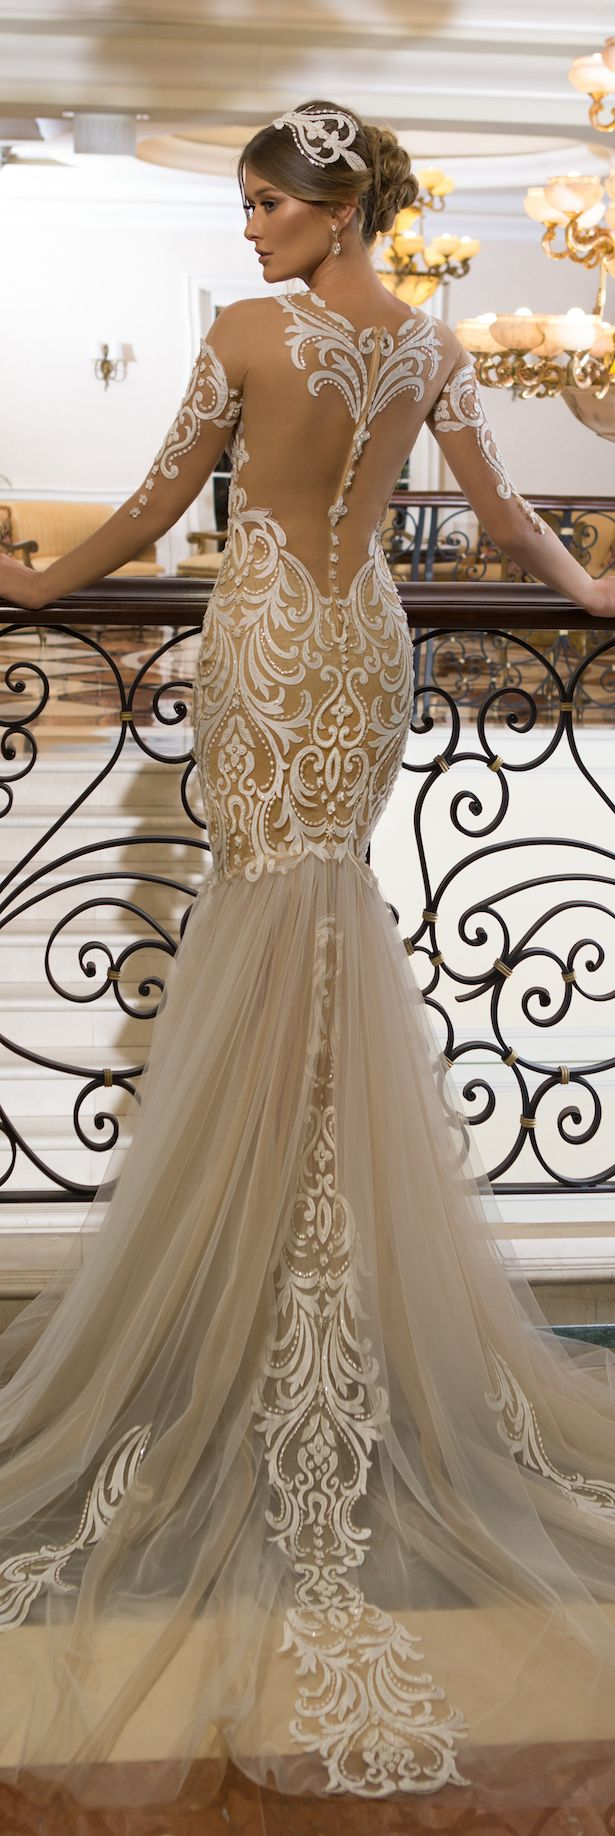 best all dressed in white or pink or ivory images on pinterest